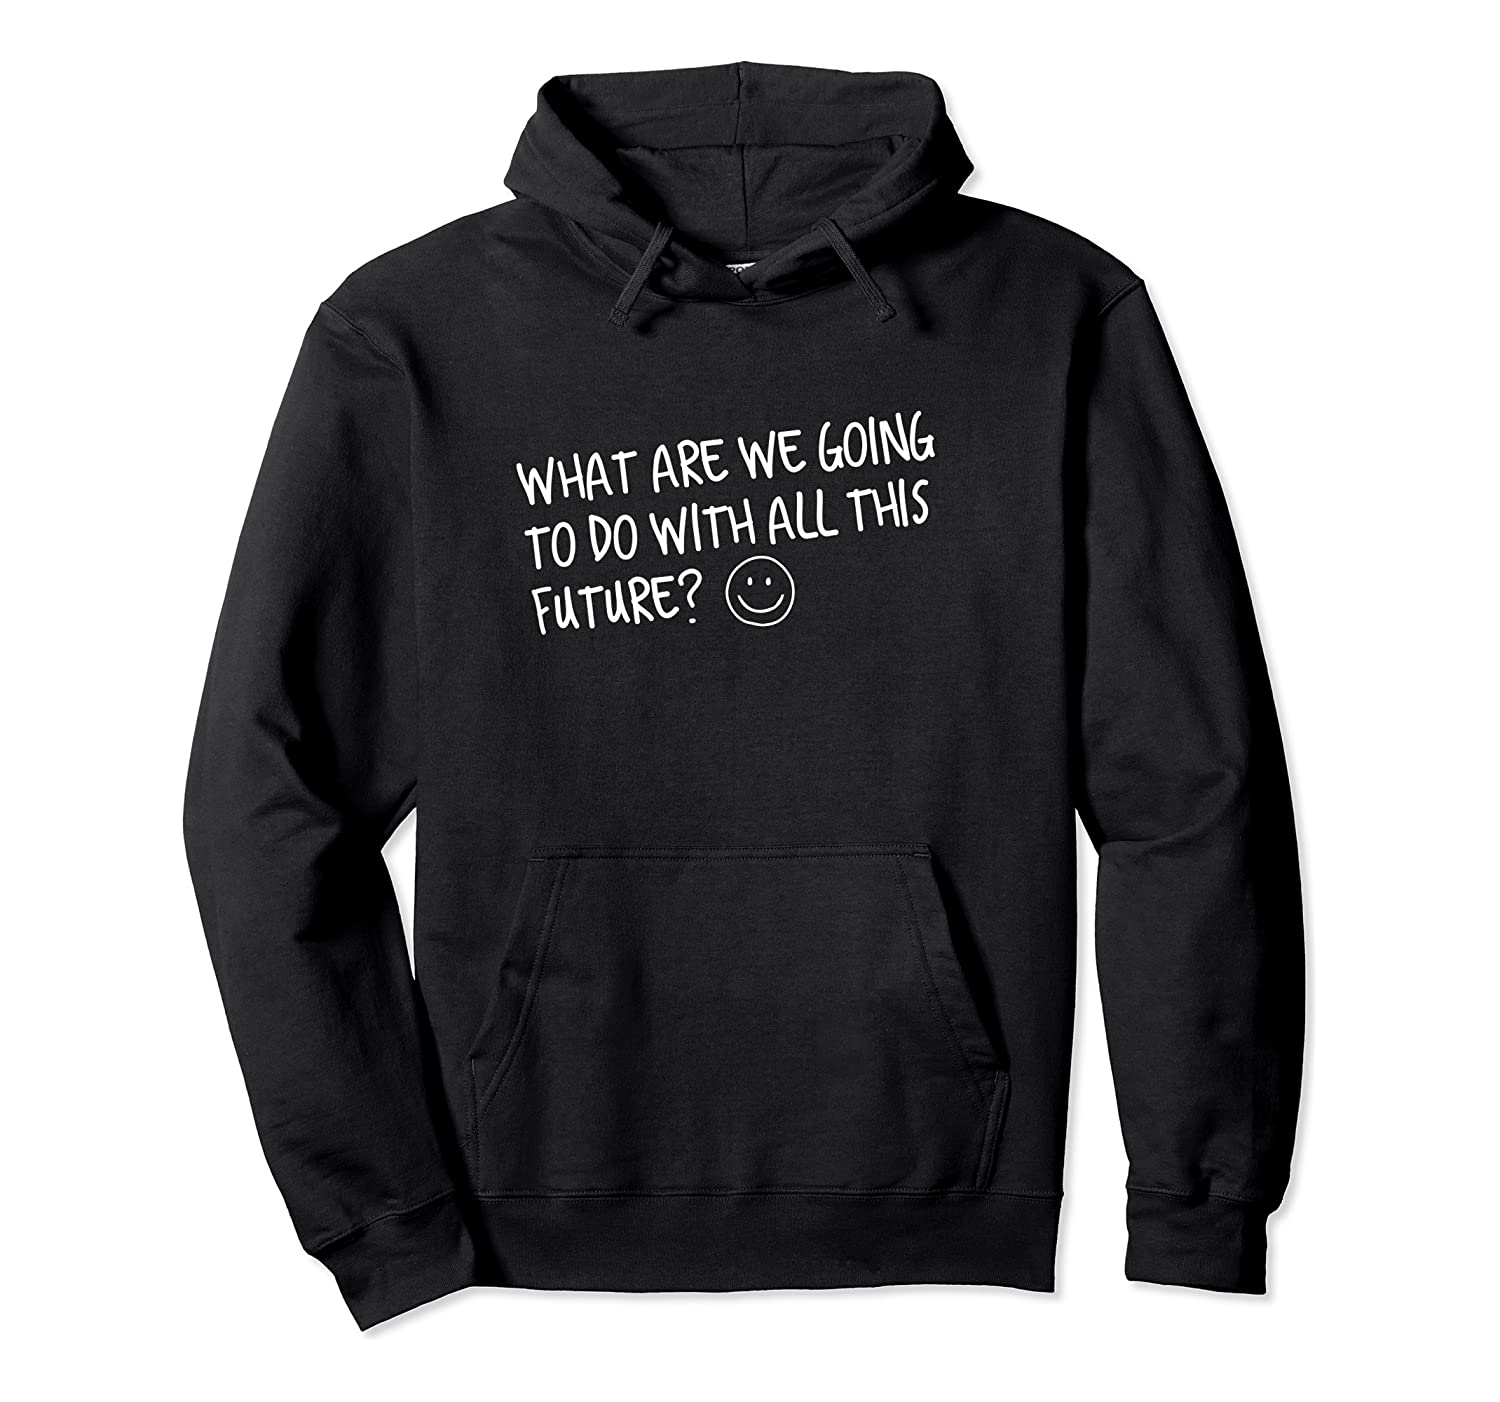 What Are We Going To Do With All This Future? Hoodie